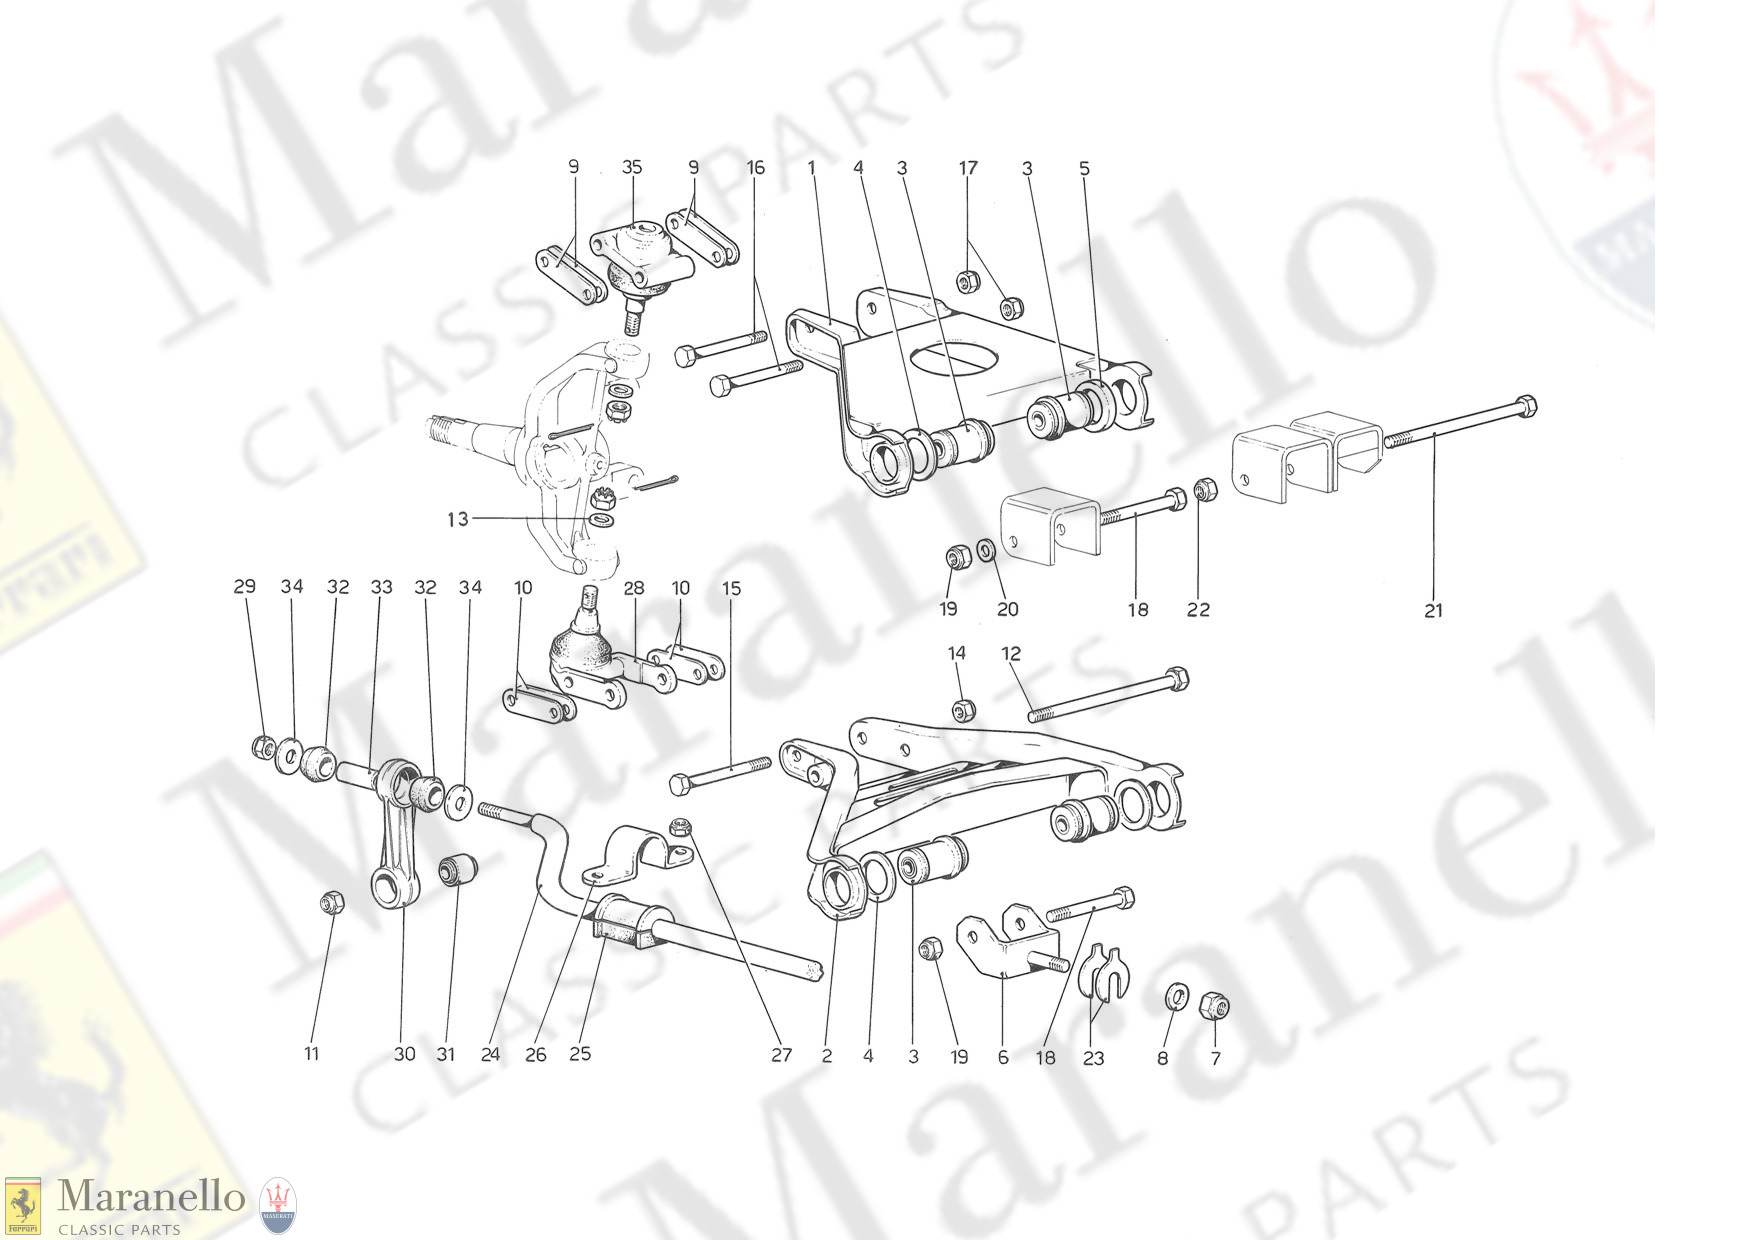 038 - Front Suspension - Wishbones